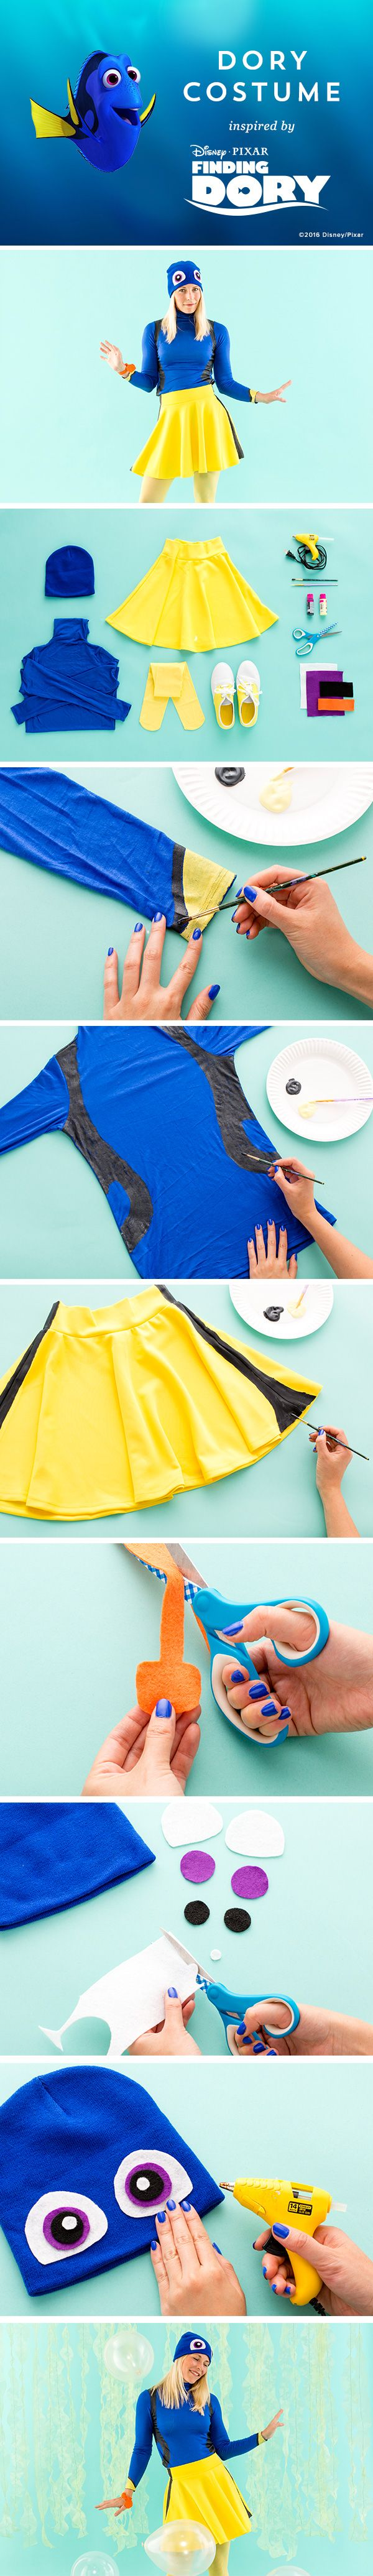 This DIY Dory costume will have you swimming through a sea of candy on Halloween. Plus, your family can join in on the fun with Nemo and Hank DIY costumes.